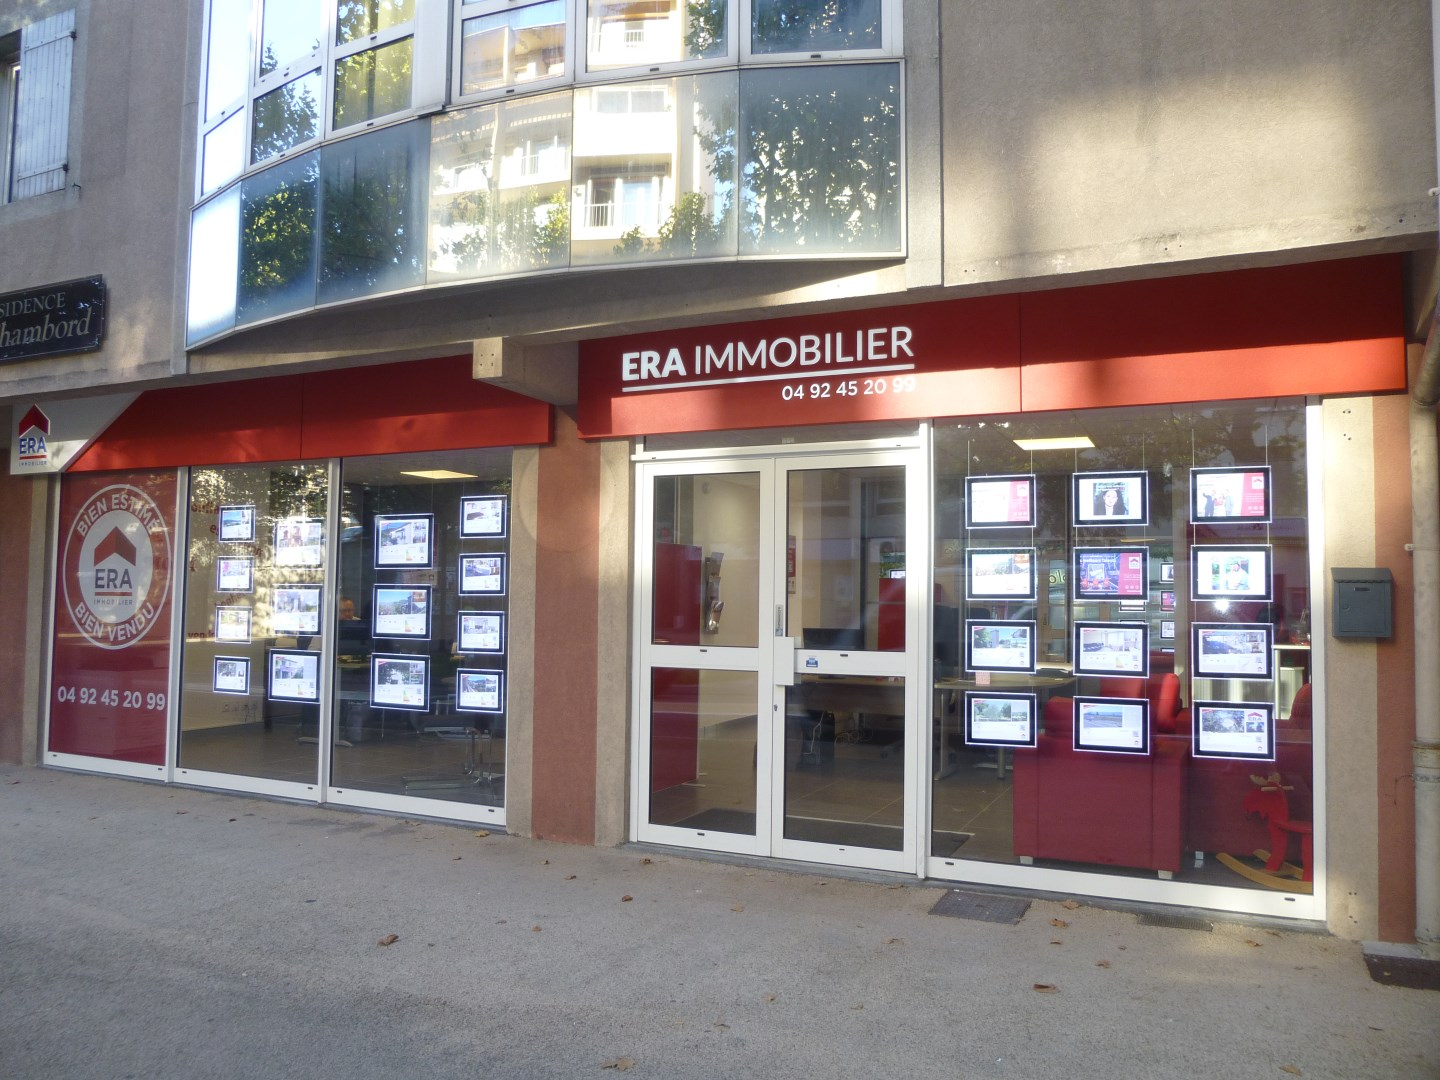 Era cdm immoconseils agence immobili re gap for Agence immobiliere era